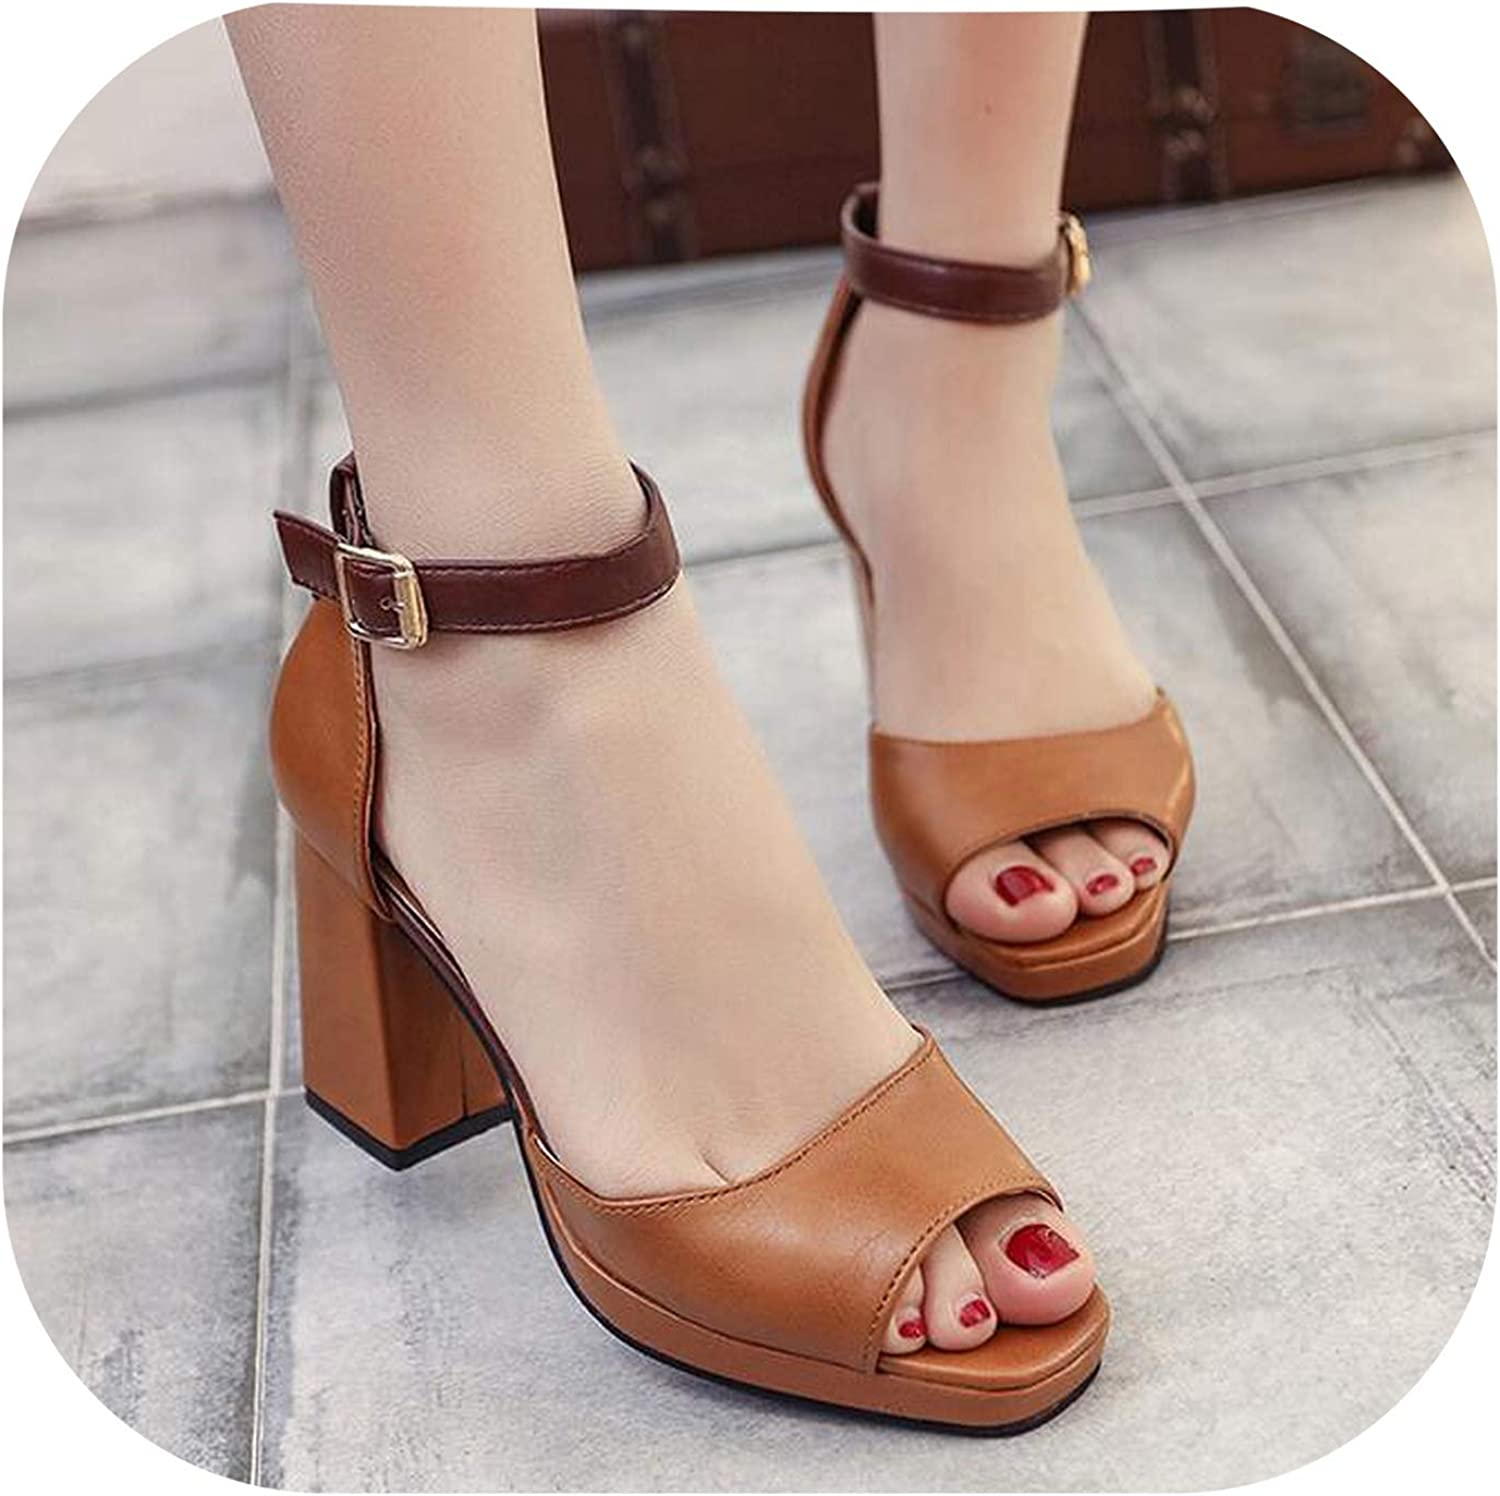 Alerghrg Sandals Fish Mouth Hollow Out Roma shoes d997